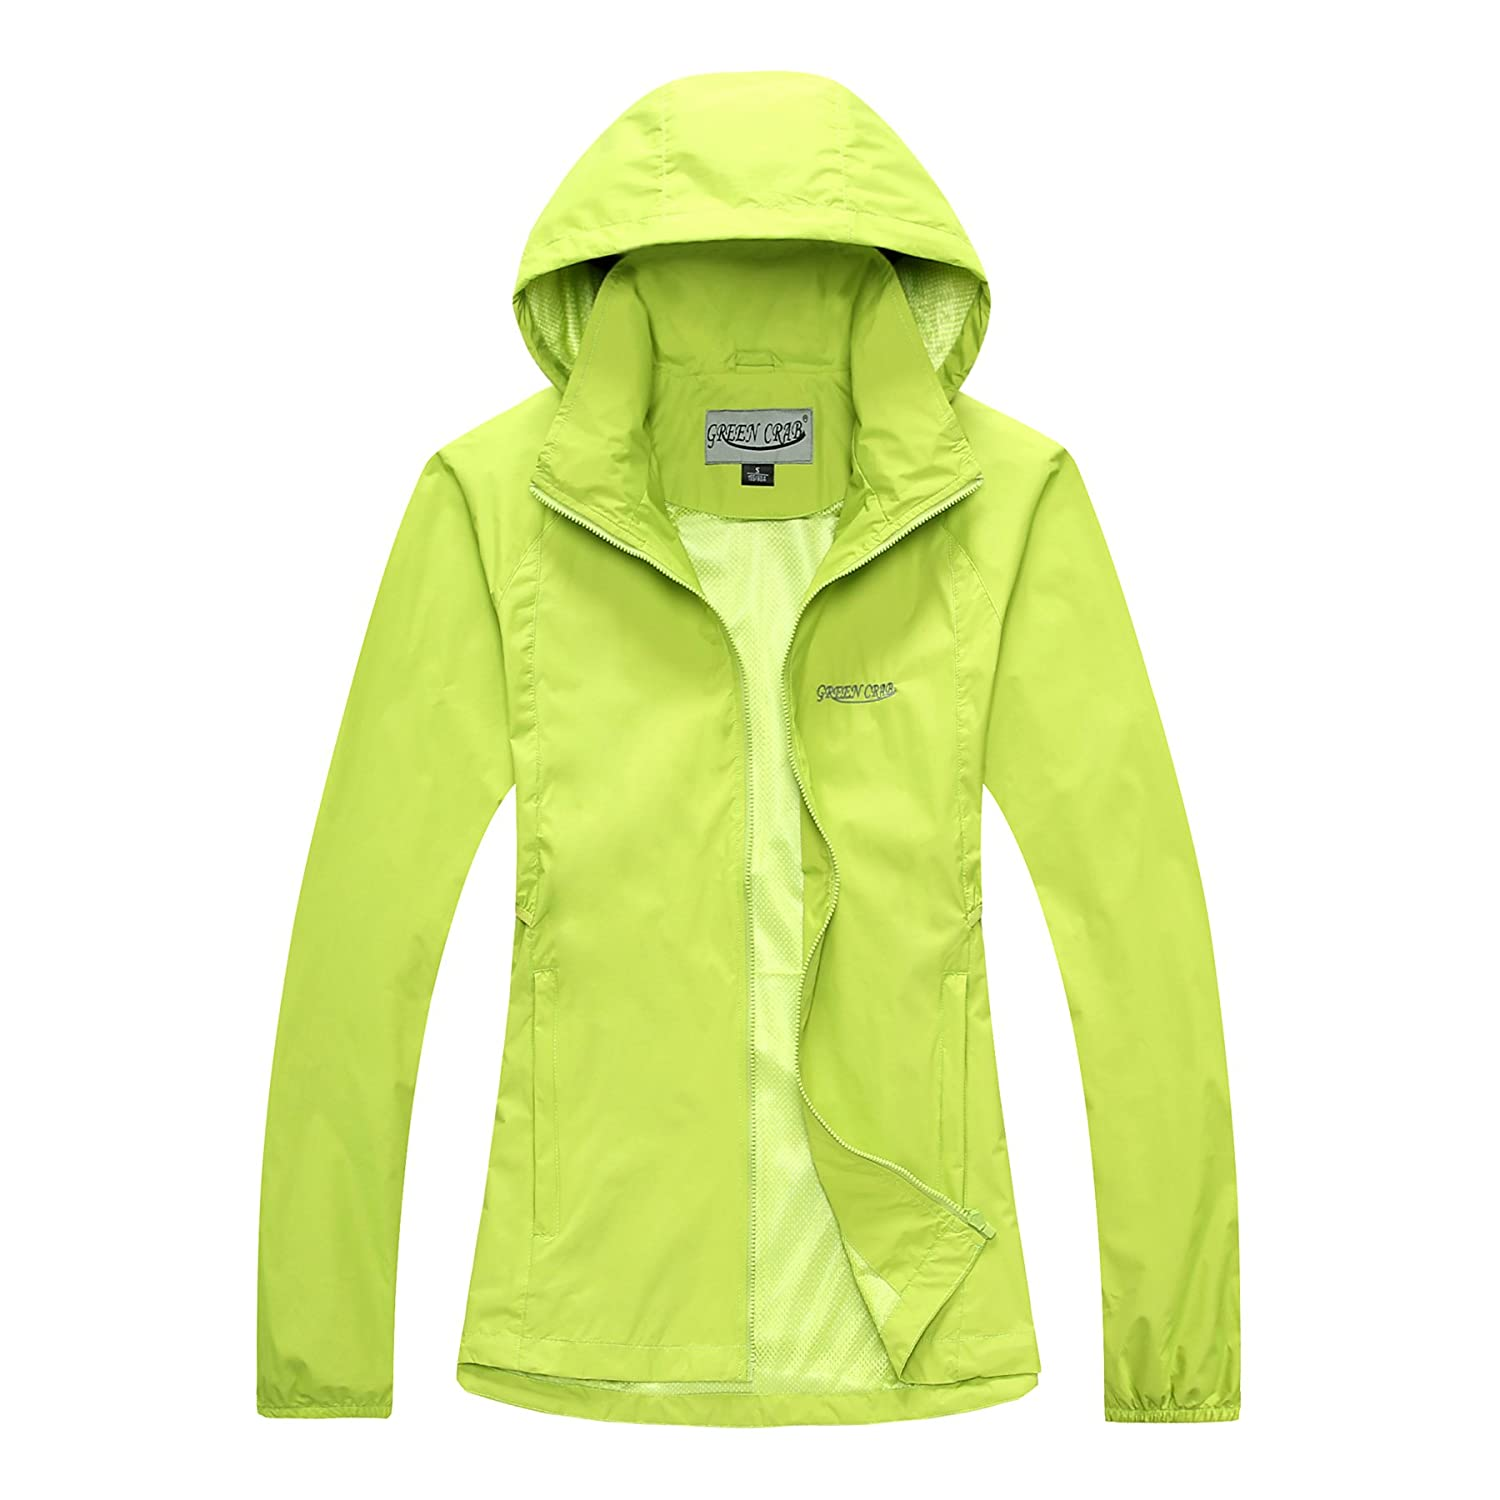 Green Crab Womens Windproof Waterproof Rain Jacket Lady Hooded Breathable Coat at Amazon Womens Clothing store: